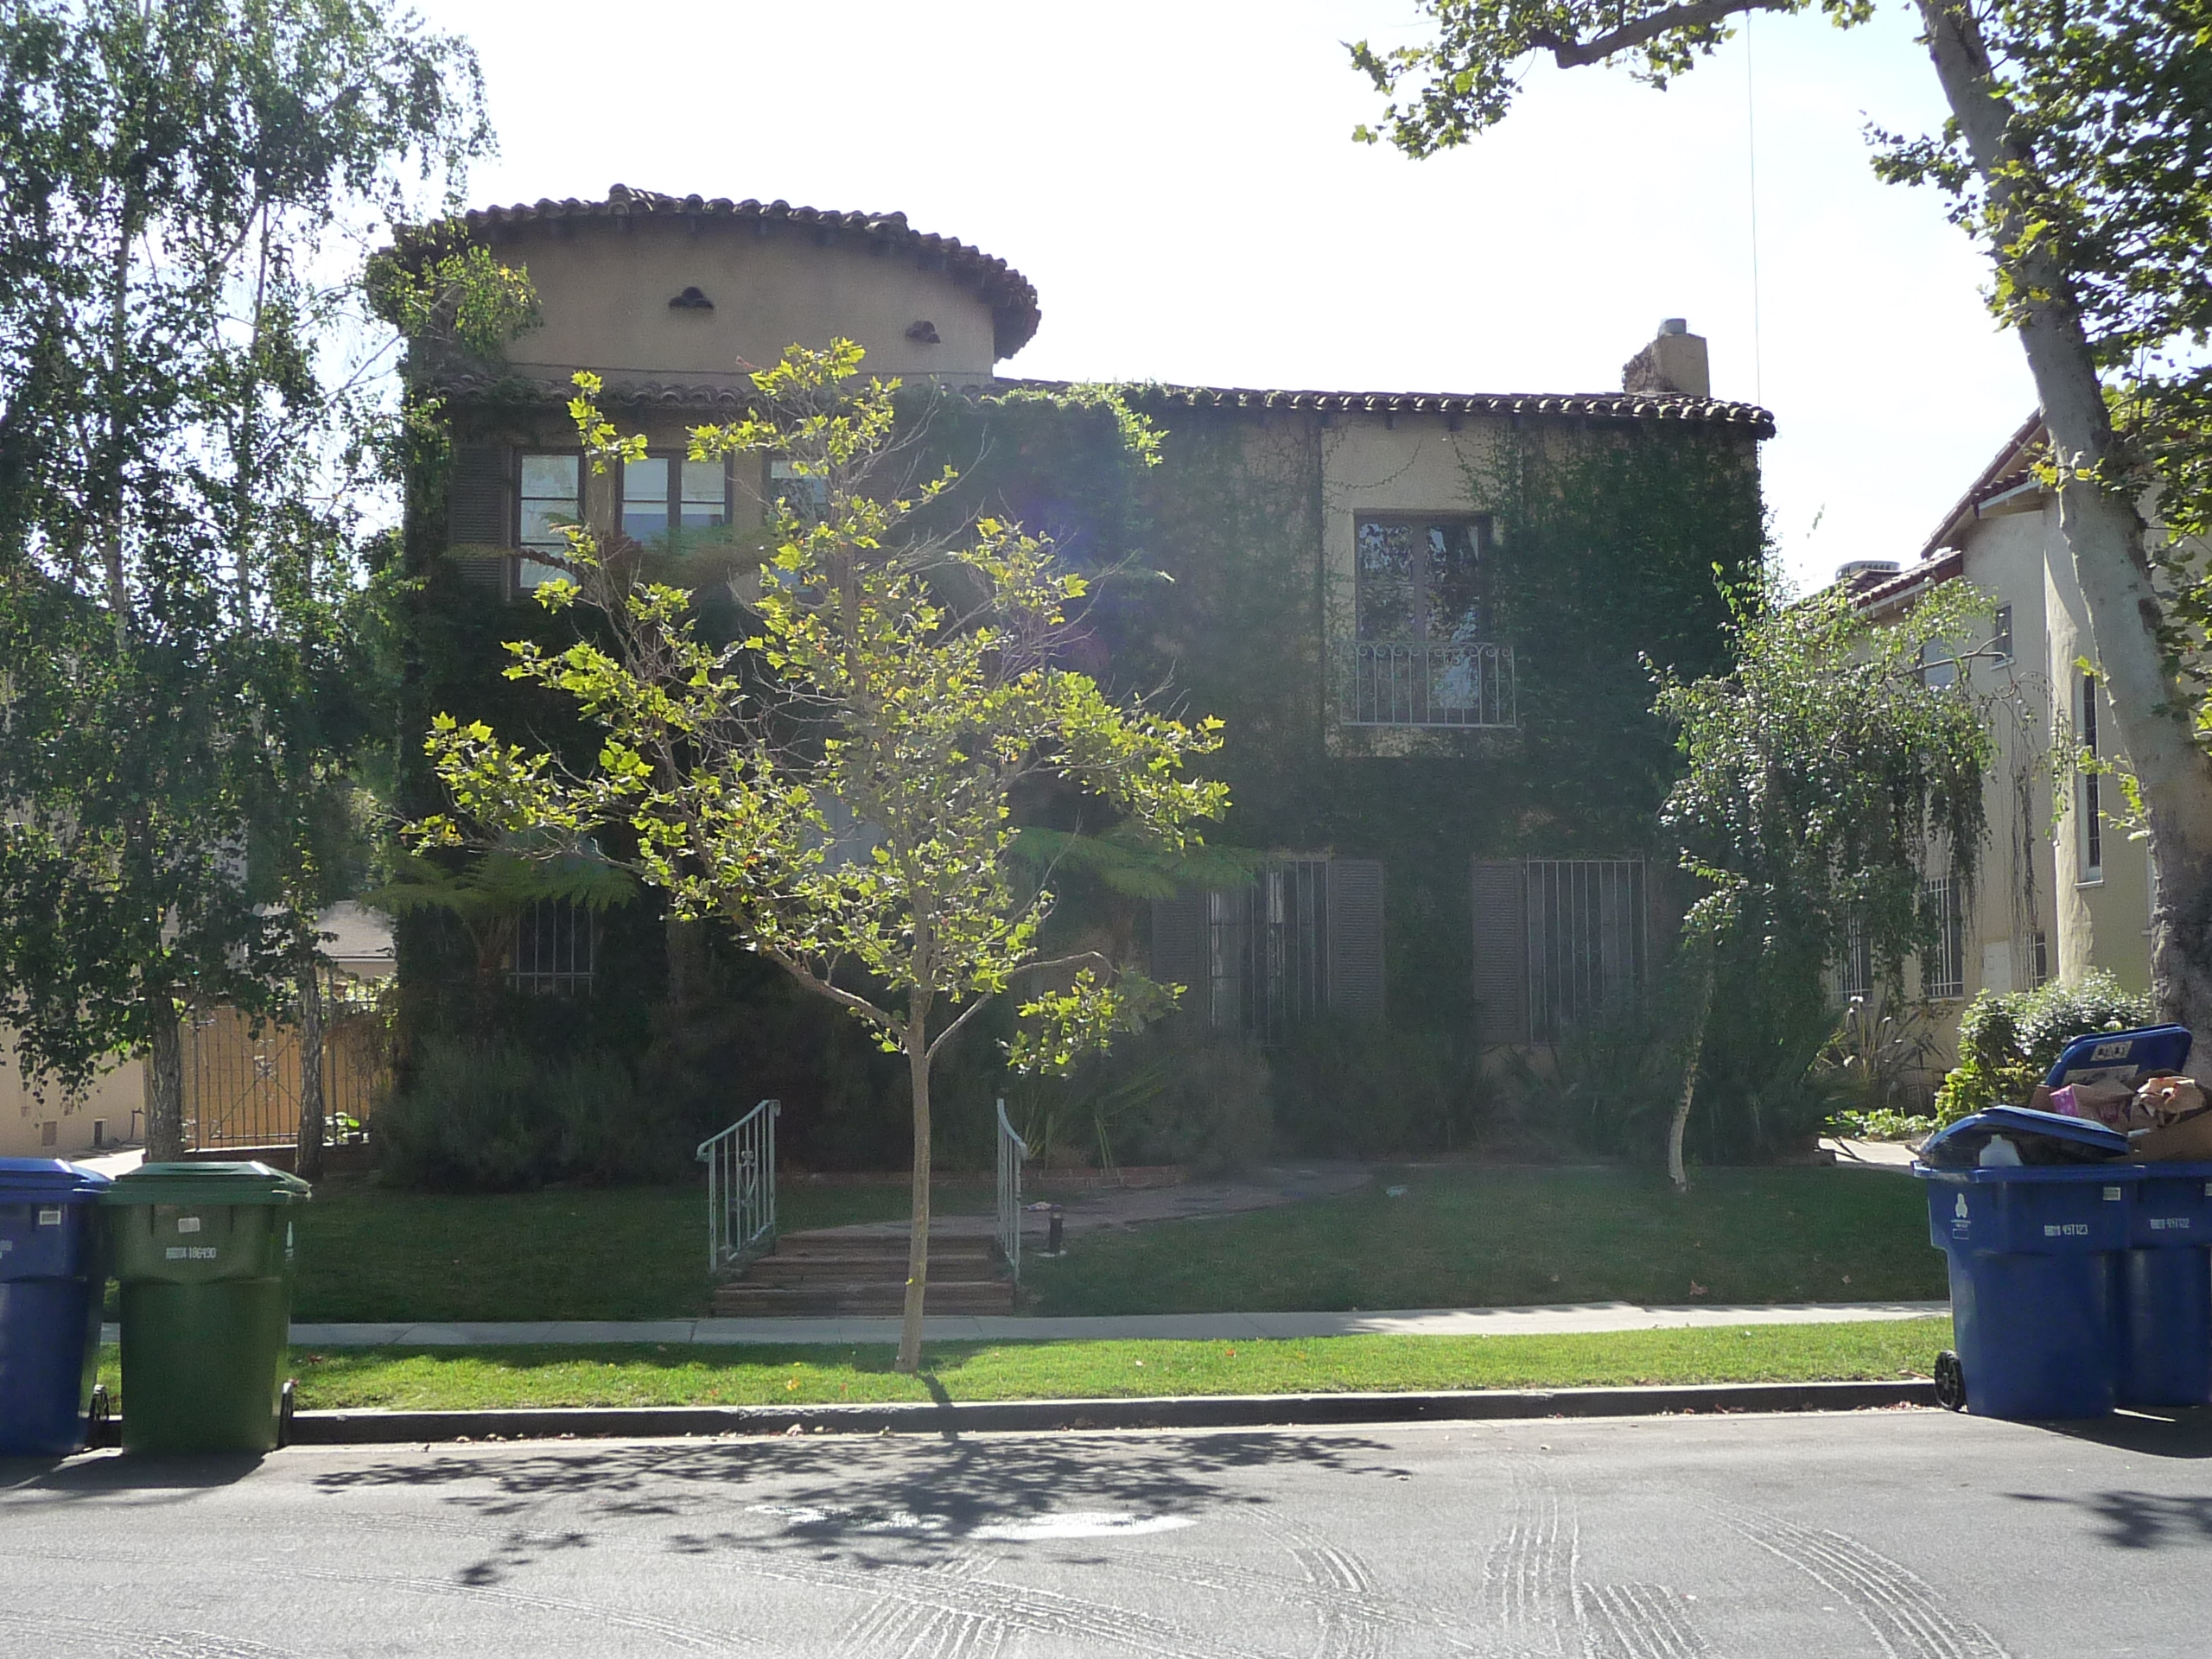 230 S MANSFIELD AVE - PHOTO